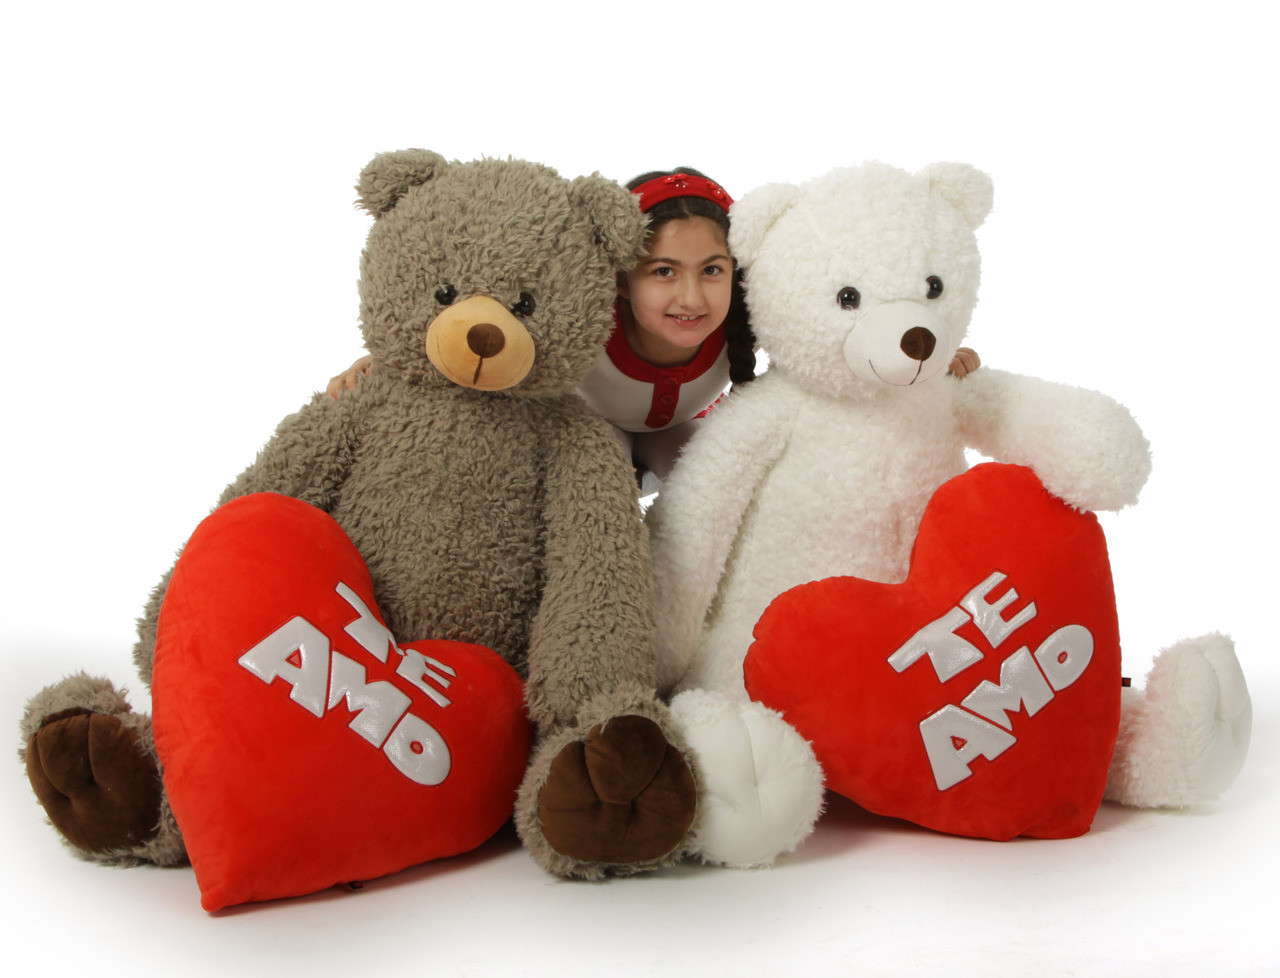 te amo valentines day teddy bears are 42in of woolly soft cuteness - Giant Teddy Bears For Valentines Day